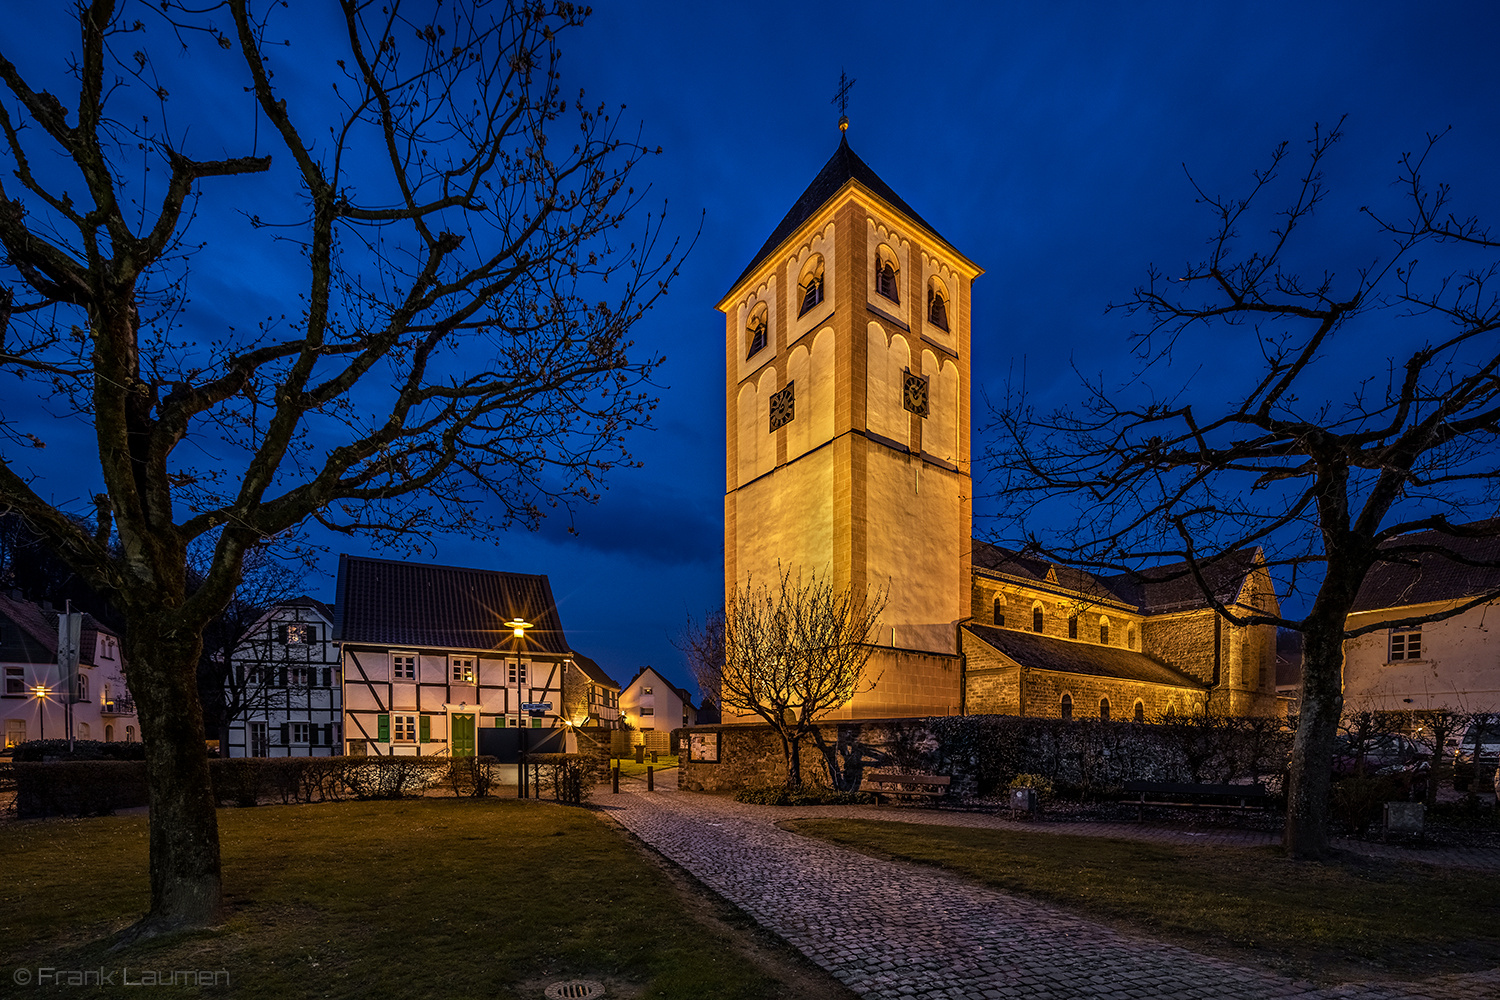 Odenthal